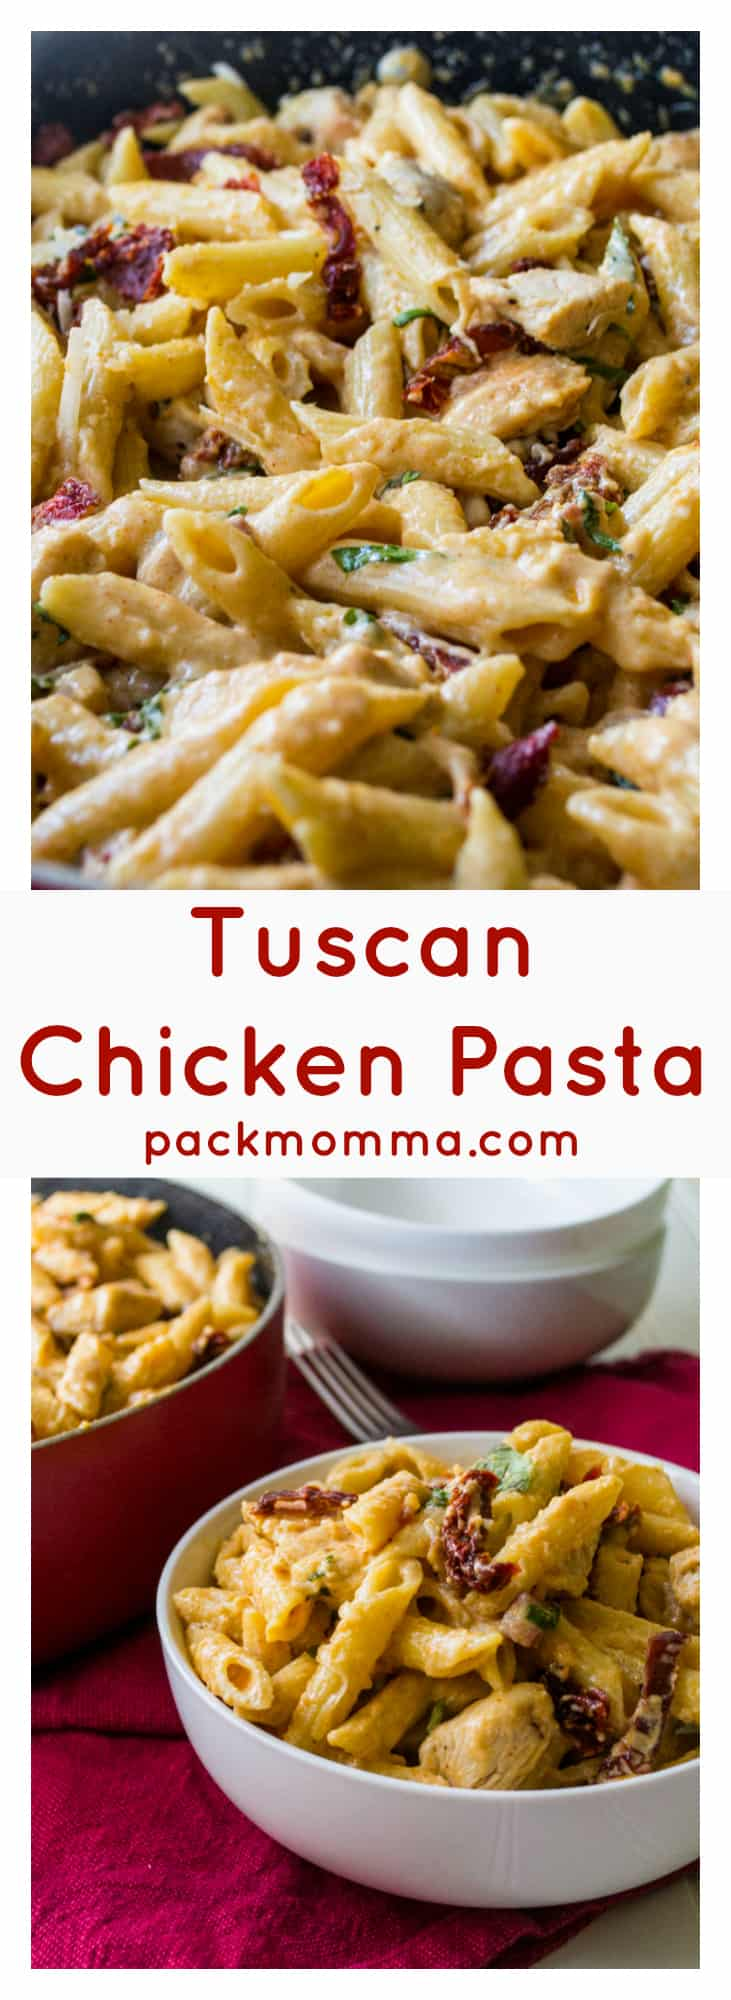 Fabulous Cheese Crock Pot Tuscan Ken Pasta A Wicked Whisk Tuscan Ken Mac Tuscan Ken Pasta Tuscan Ken Pasta Is Creamy Cheese Twisted Tuscan Ken Mac A Littlespicy nice food Tuscan Chicken Mac And Cheese